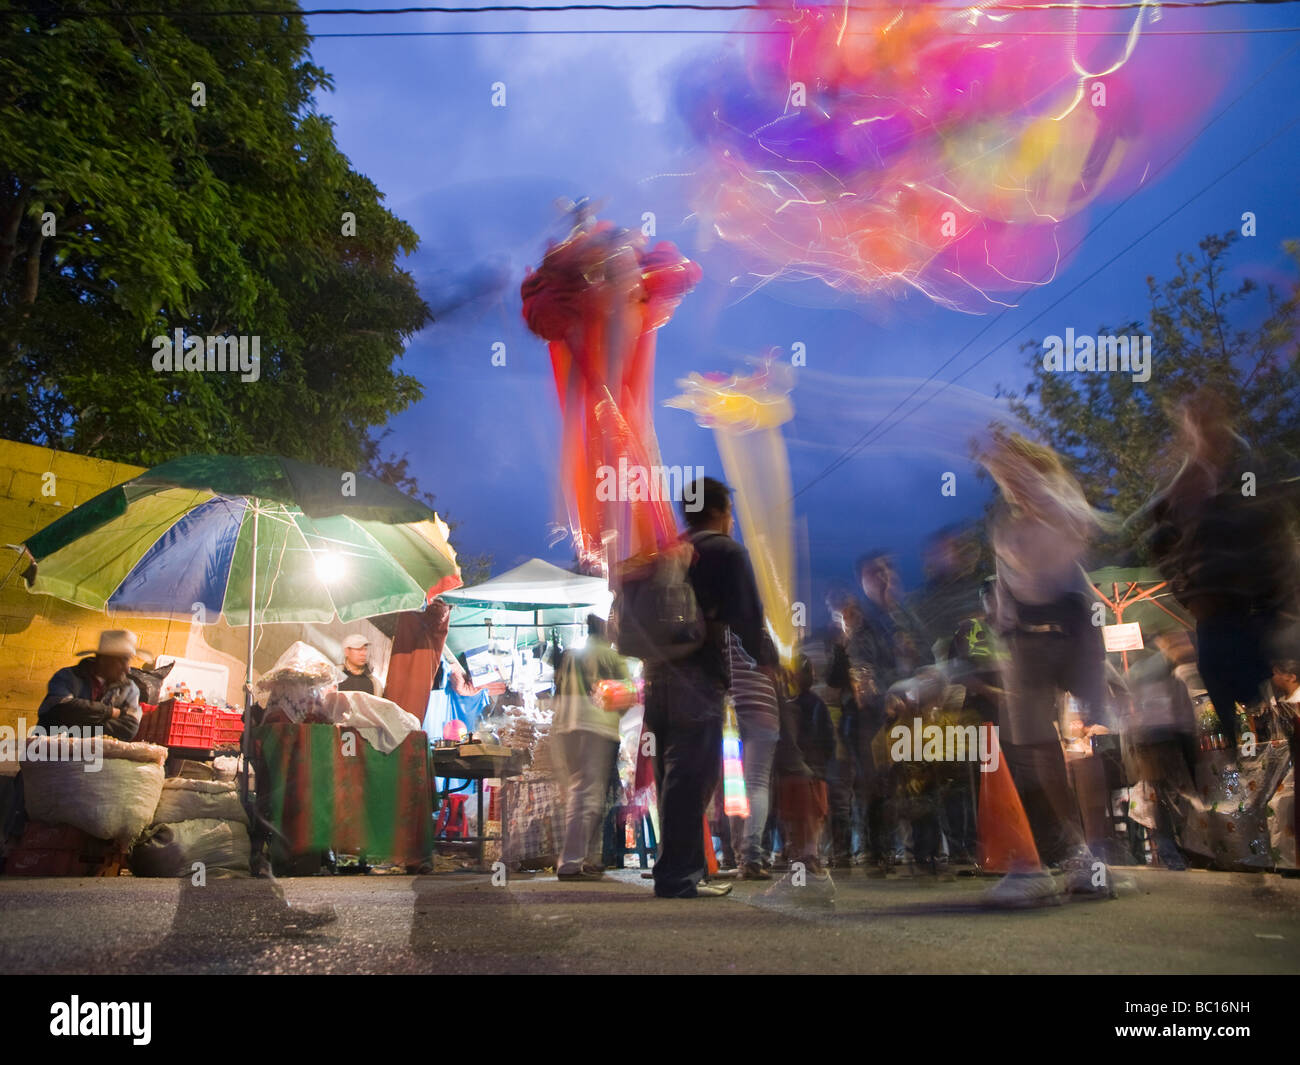 During a street festival, a man sells balloons at twilight. - Stock Image